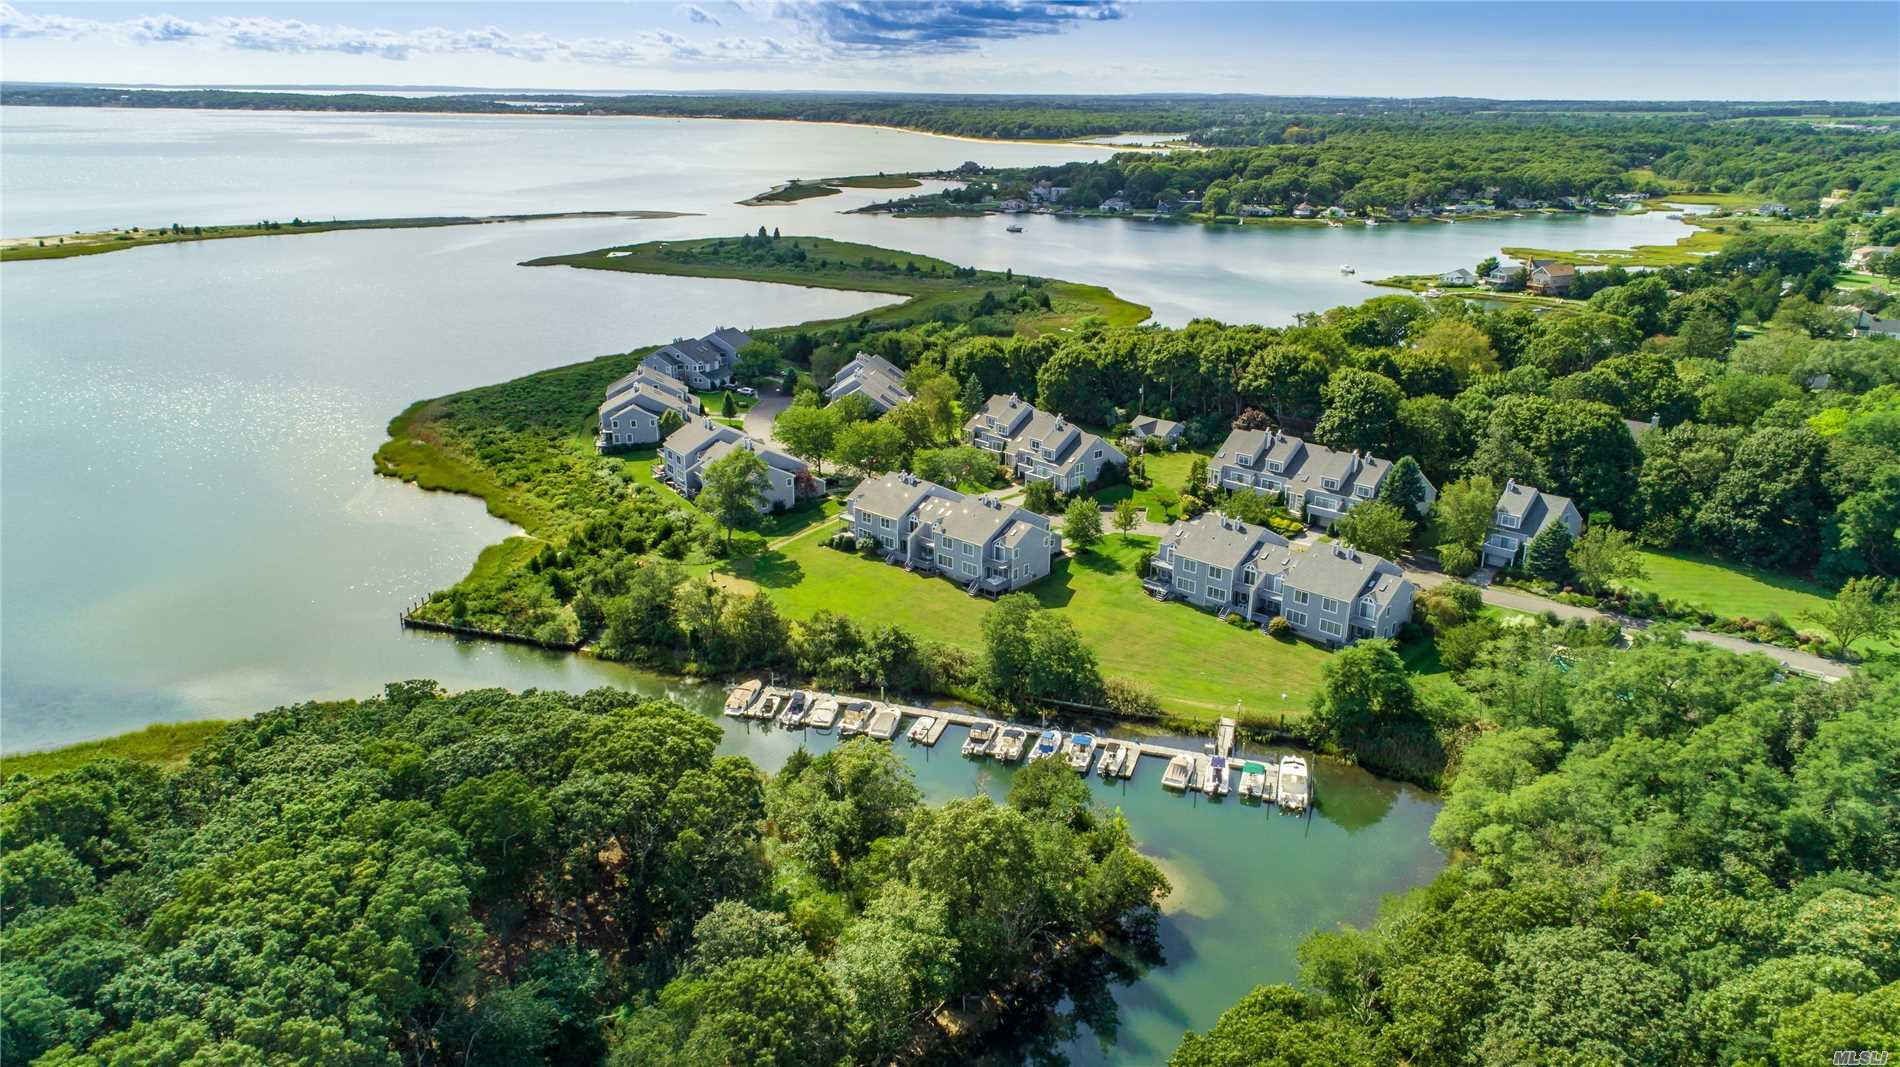 Enjoy Creek And Bay Views From This End Unit Waterfront Condo In The Cove At Southold. Master Bedroom With Waterside Deck, Two Additional Guest Bedrooms, One With Waterviews, Spacious Kitchen And Living Room With Brick Fireplace, Oak Flooring Throughout, Full Basement And Garage. Heated Pool, Tennis And Marina.